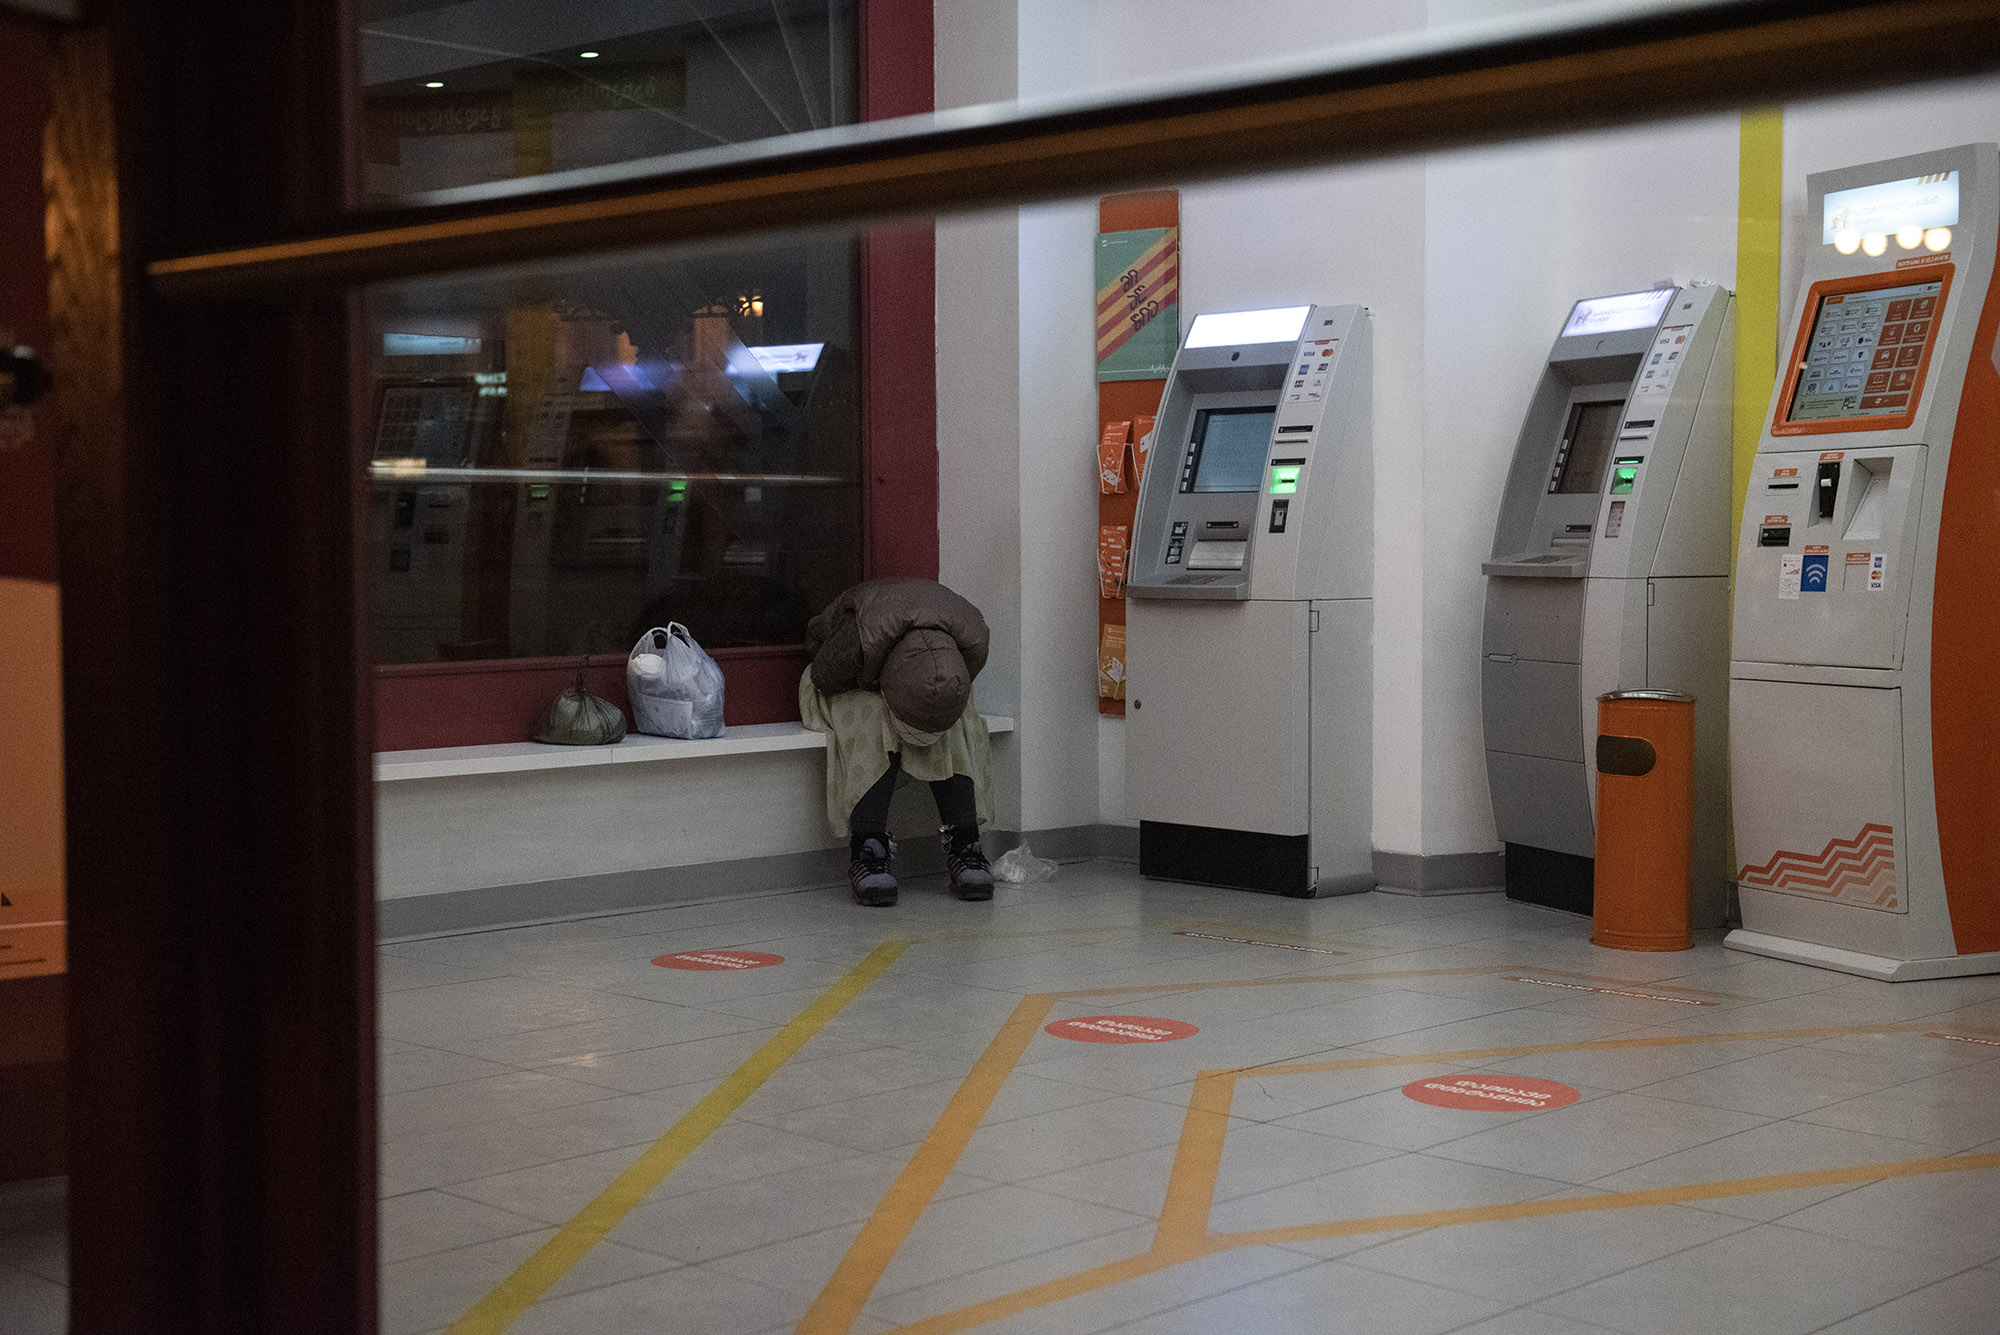 A woman sleeps inside a Bank of Georgia ATM area on 31 March. Photo: Mariam Nikuradze/OC Media.